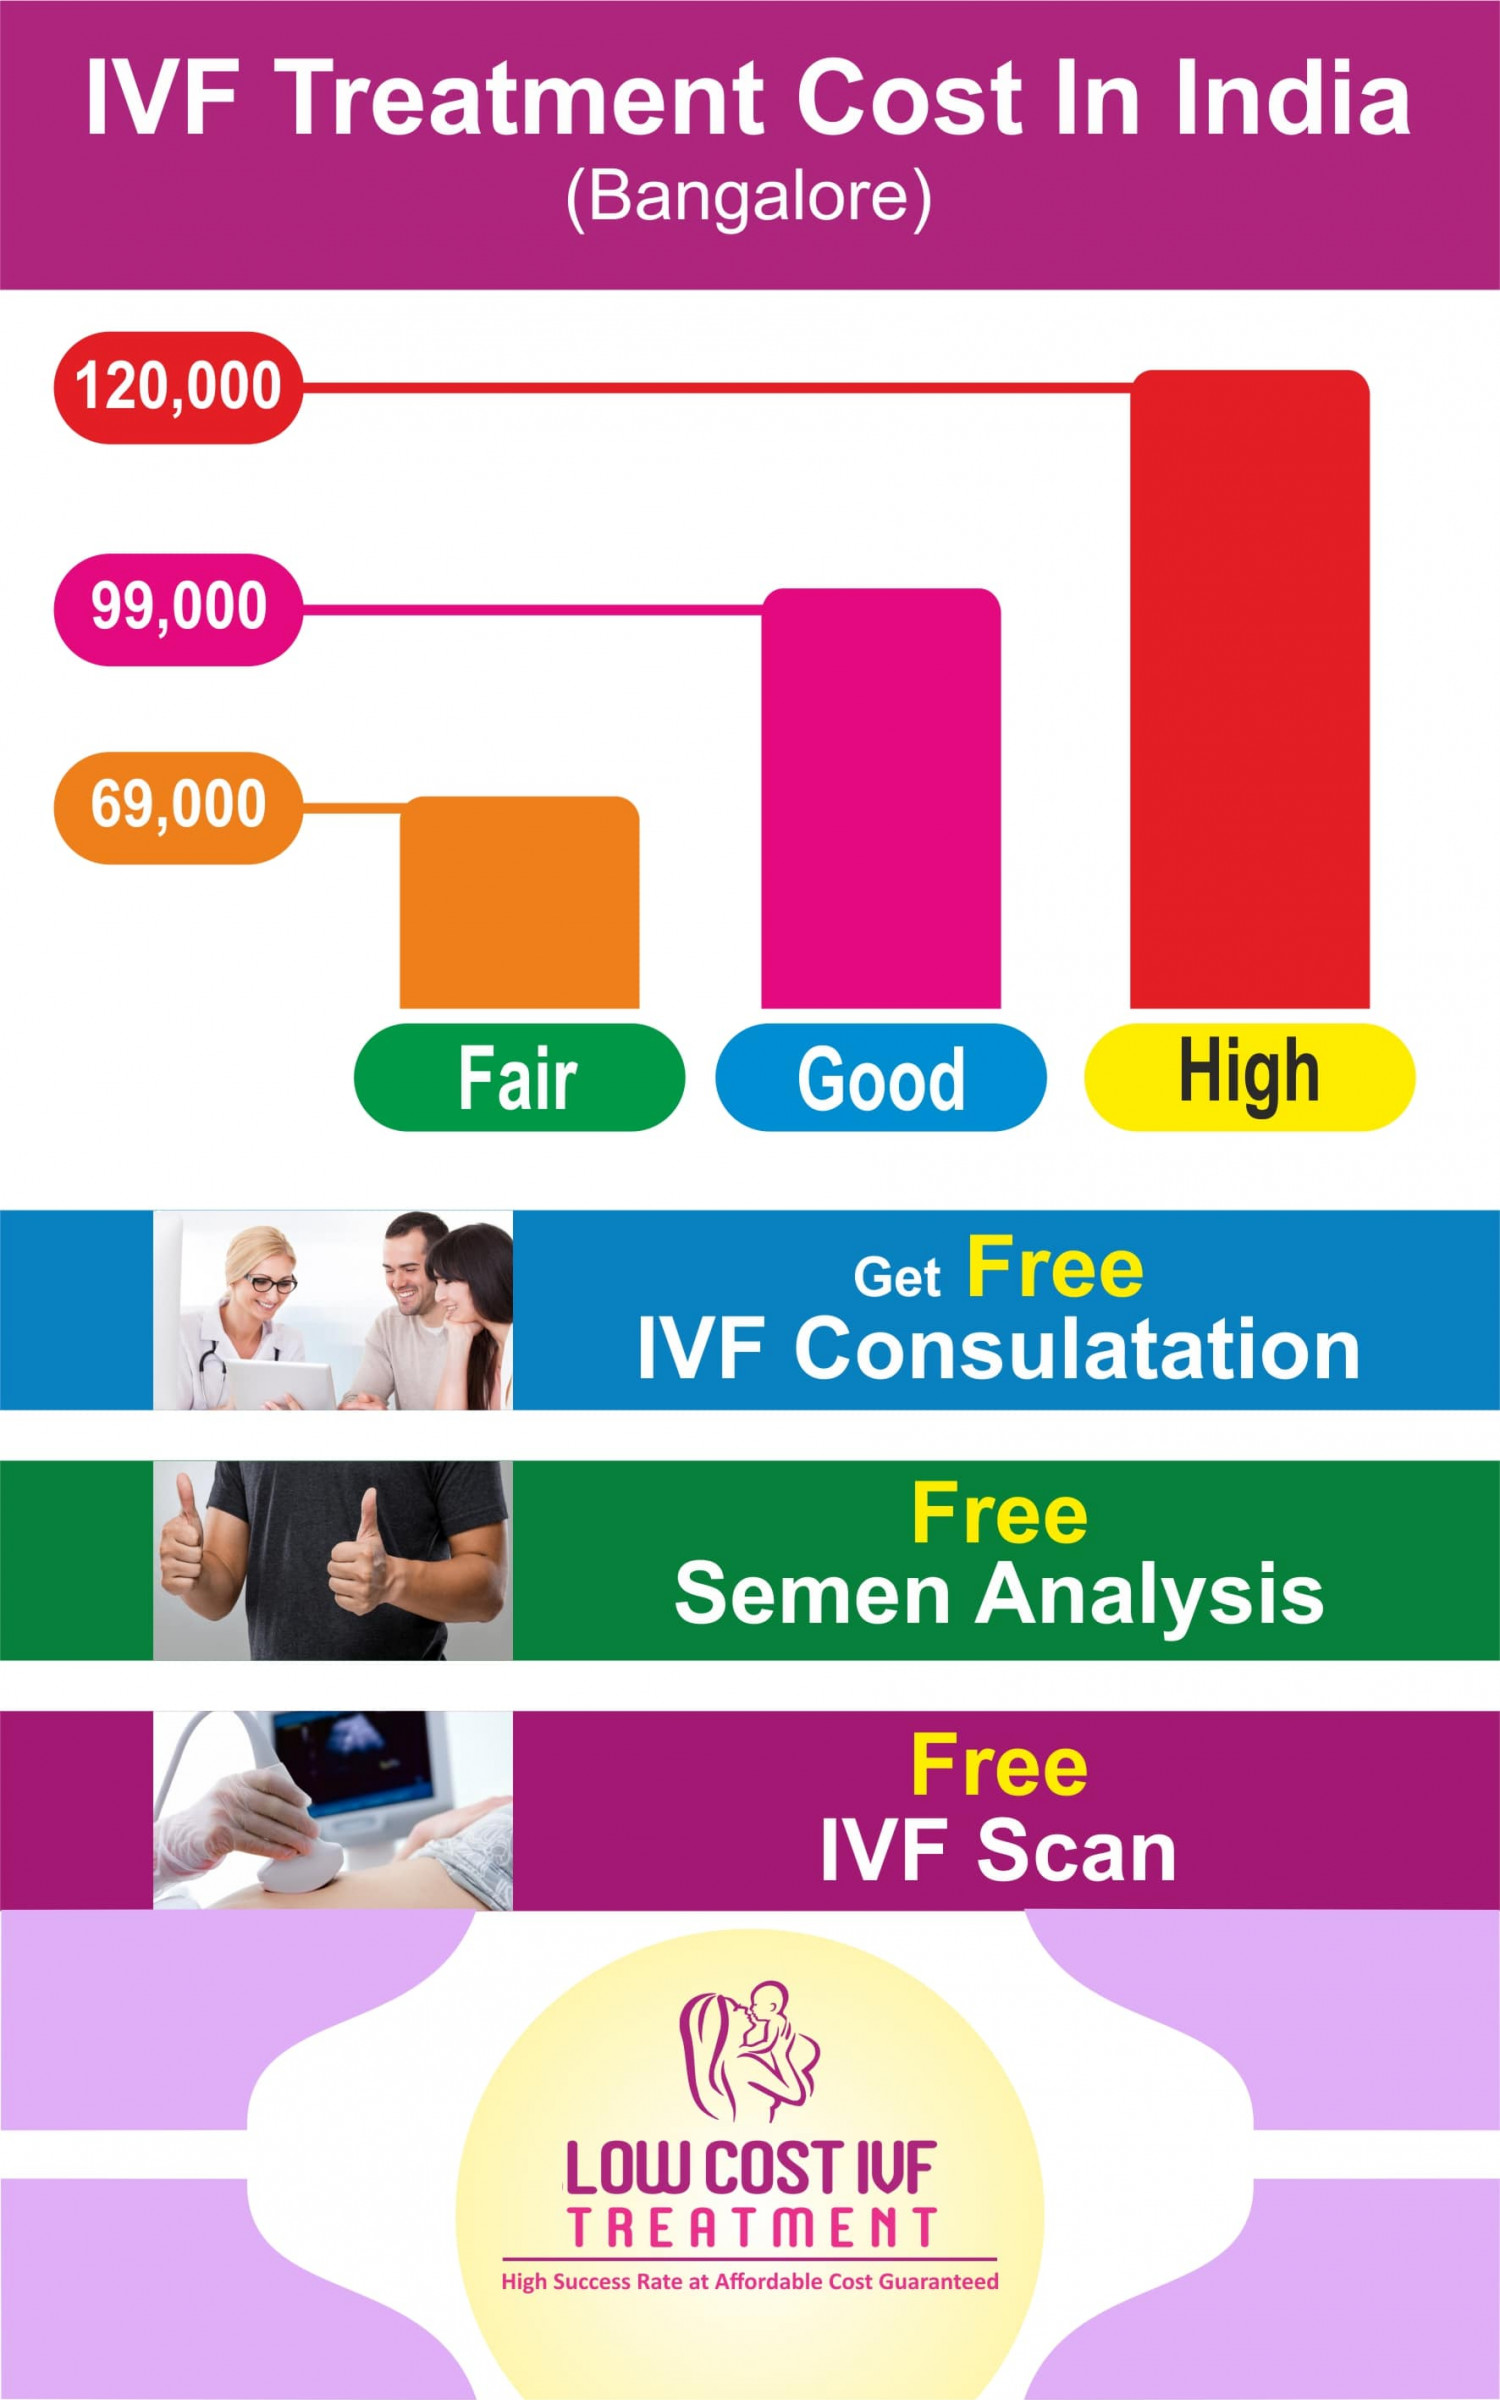 IVF Cost   What is the IVF Treatment Cost in India 2019? IVF Treatment in Bangalore Infographic